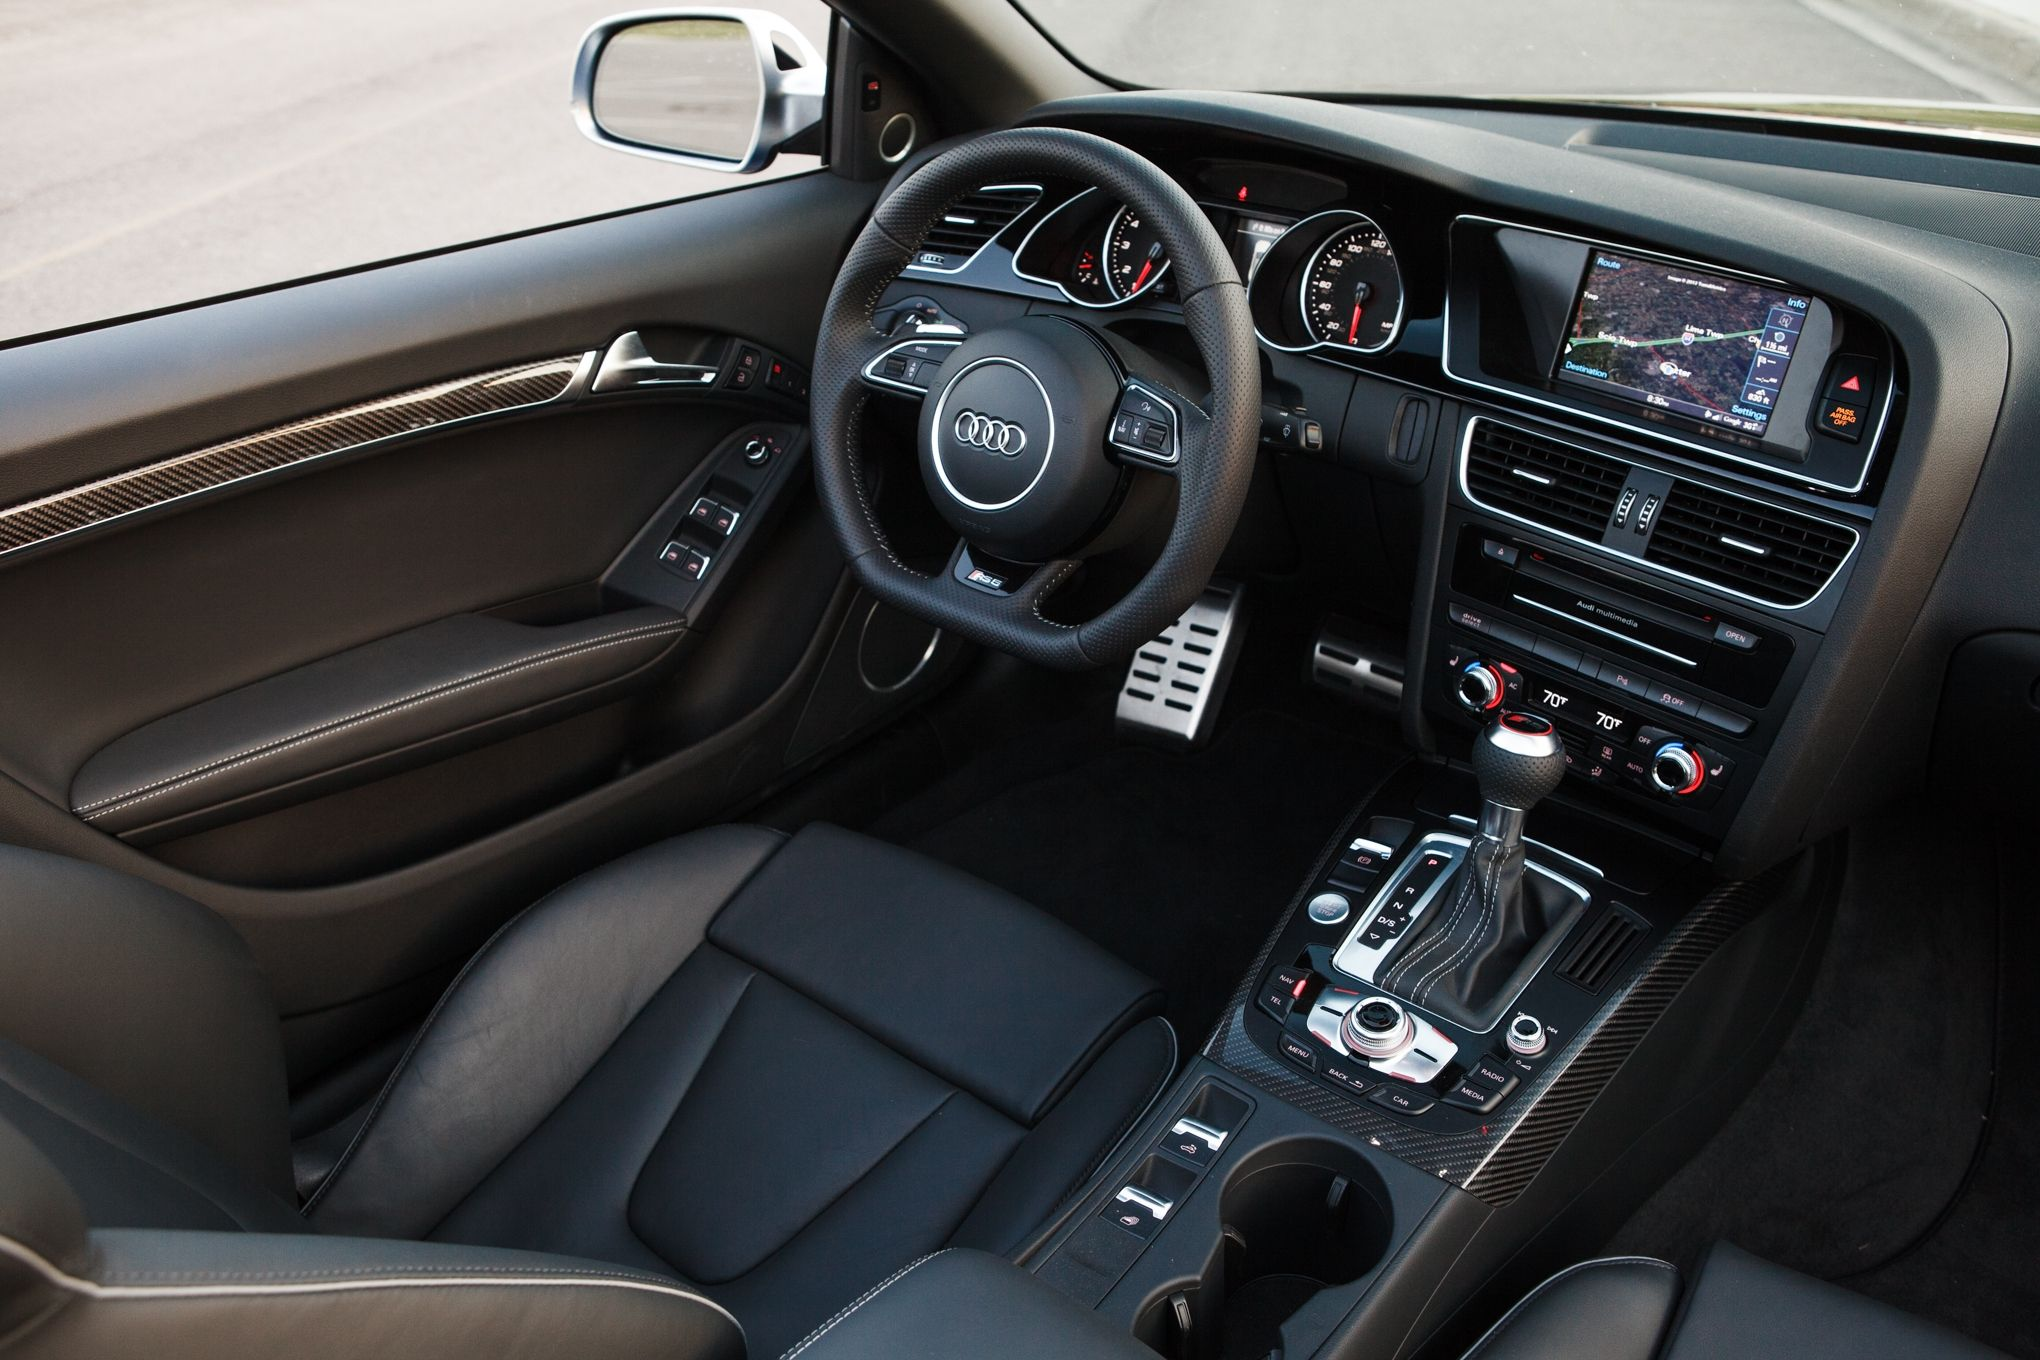 audi 2015 a5 interior. 46 best stuff to buy images on pinterest audi s5 and black rims 2015 a5 interior h